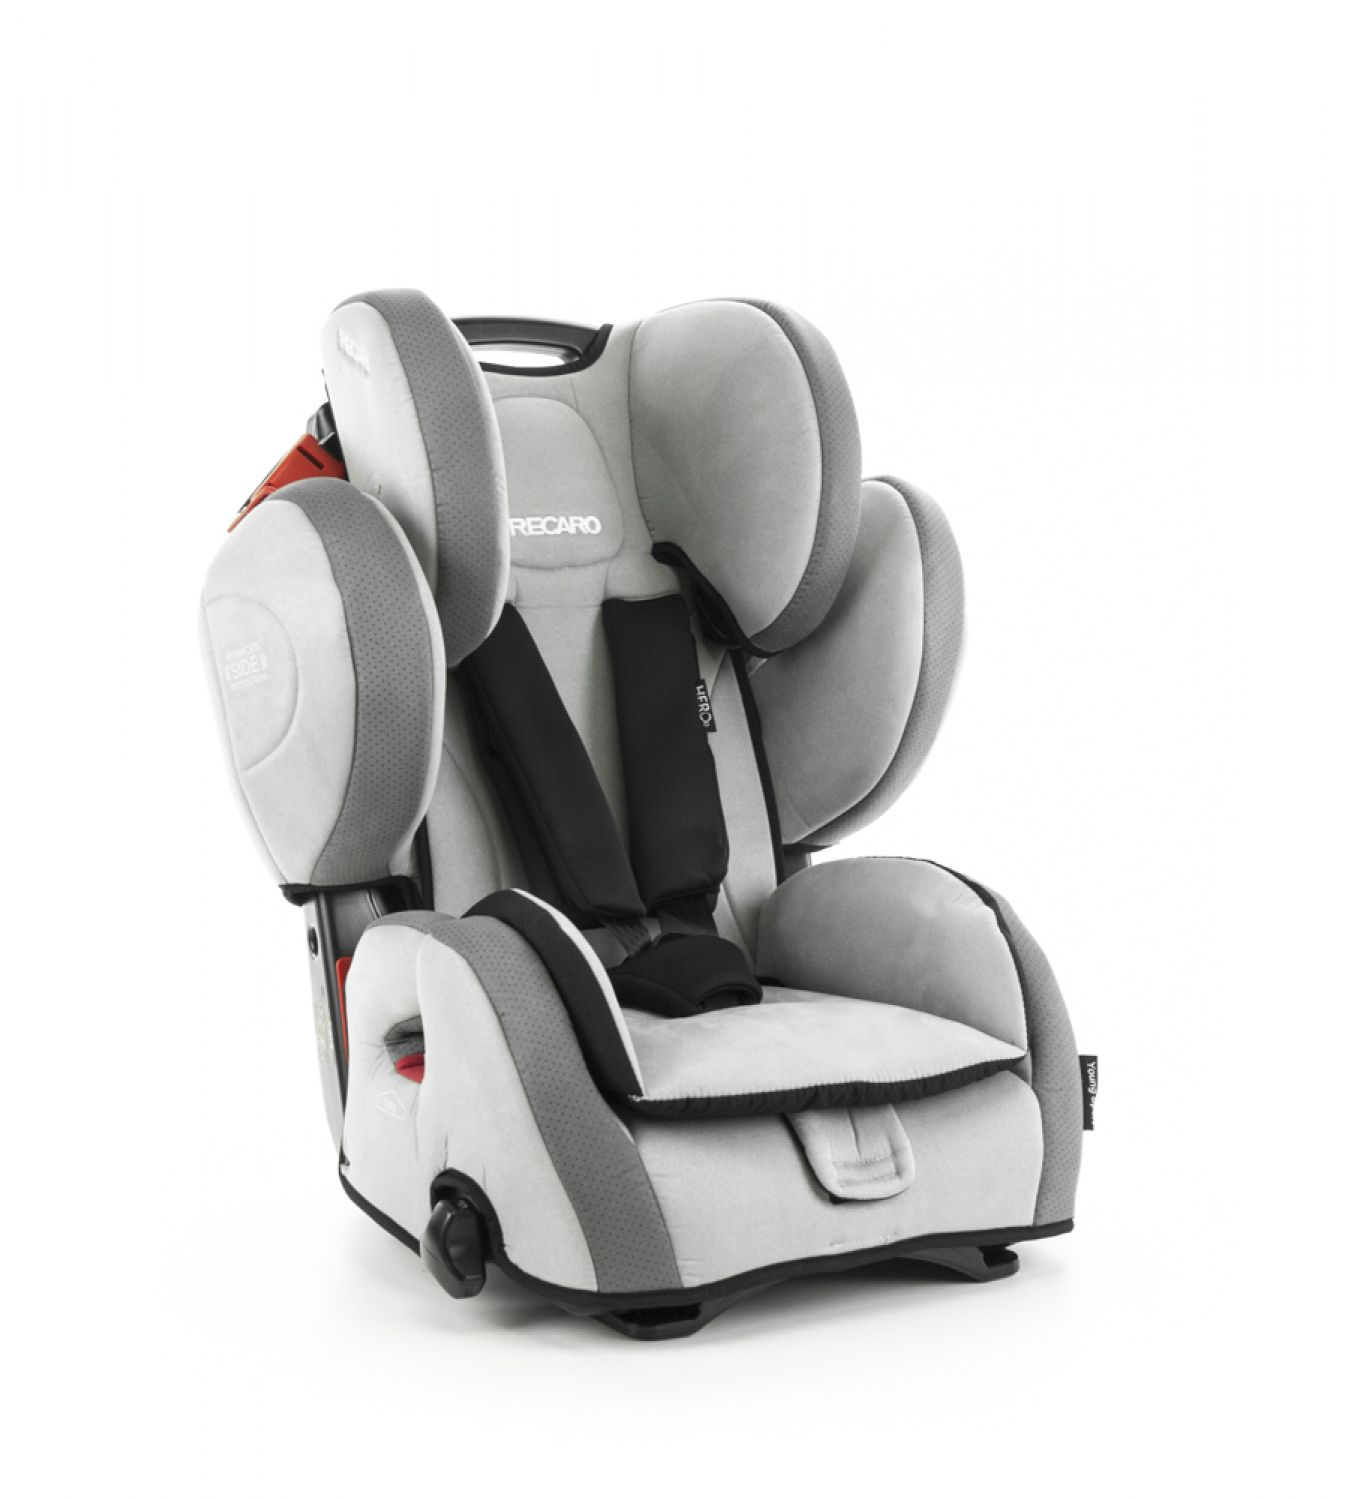 recaro young sport hero kindersitz 9 36kg gruppe 1 2 3 shadow topangebot ebay. Black Bedroom Furniture Sets. Home Design Ideas